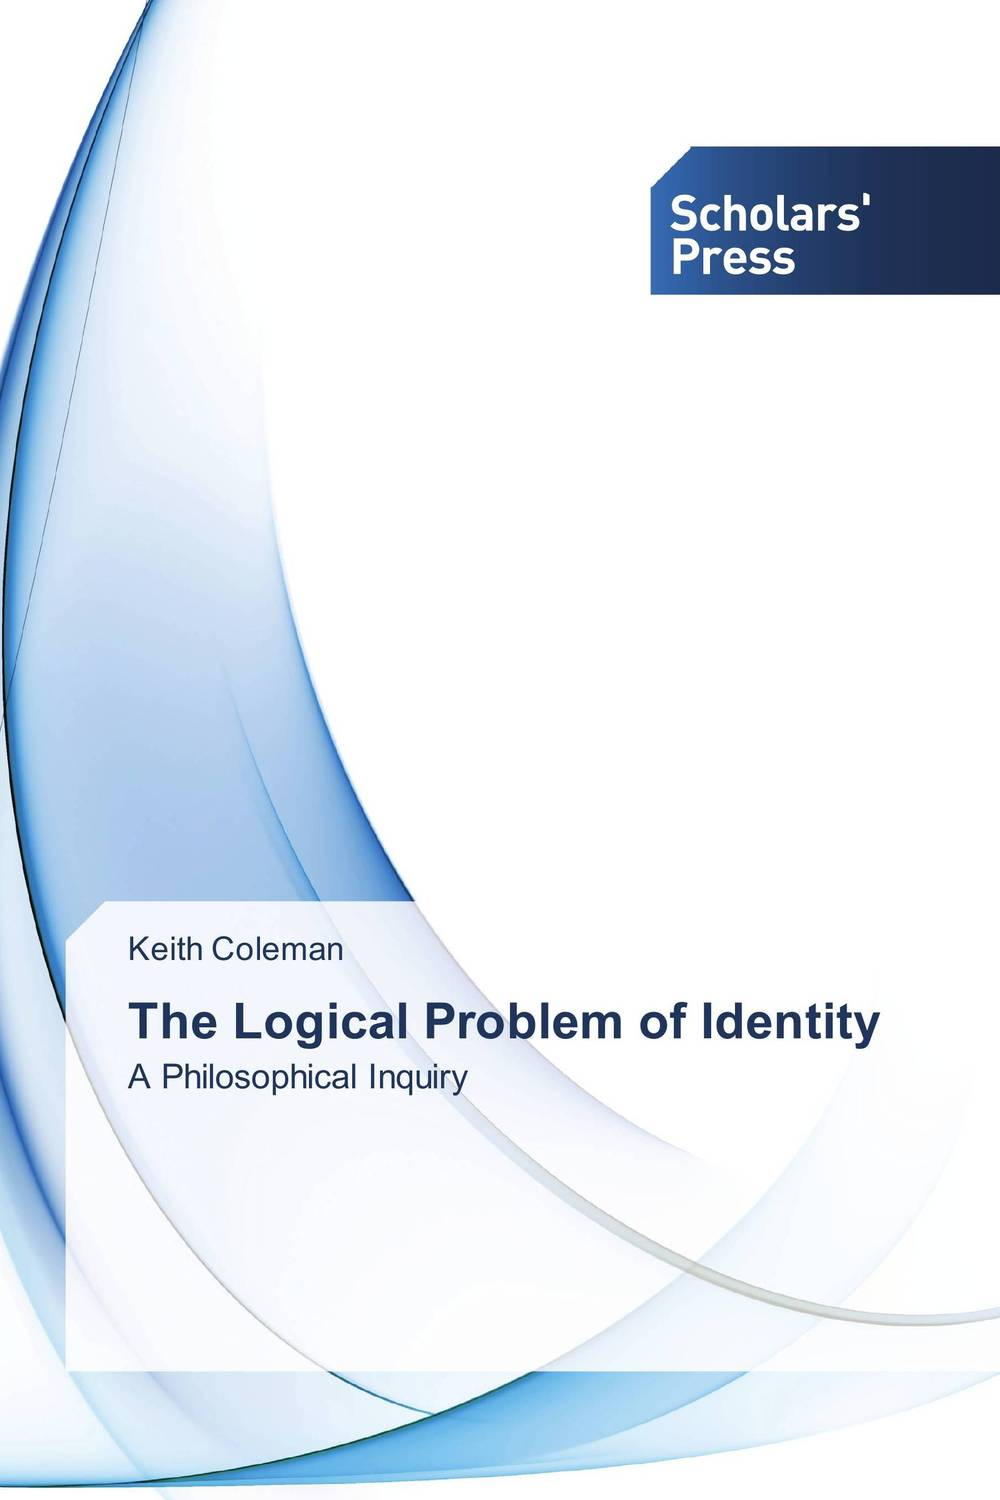 The Logical Problem of Identity